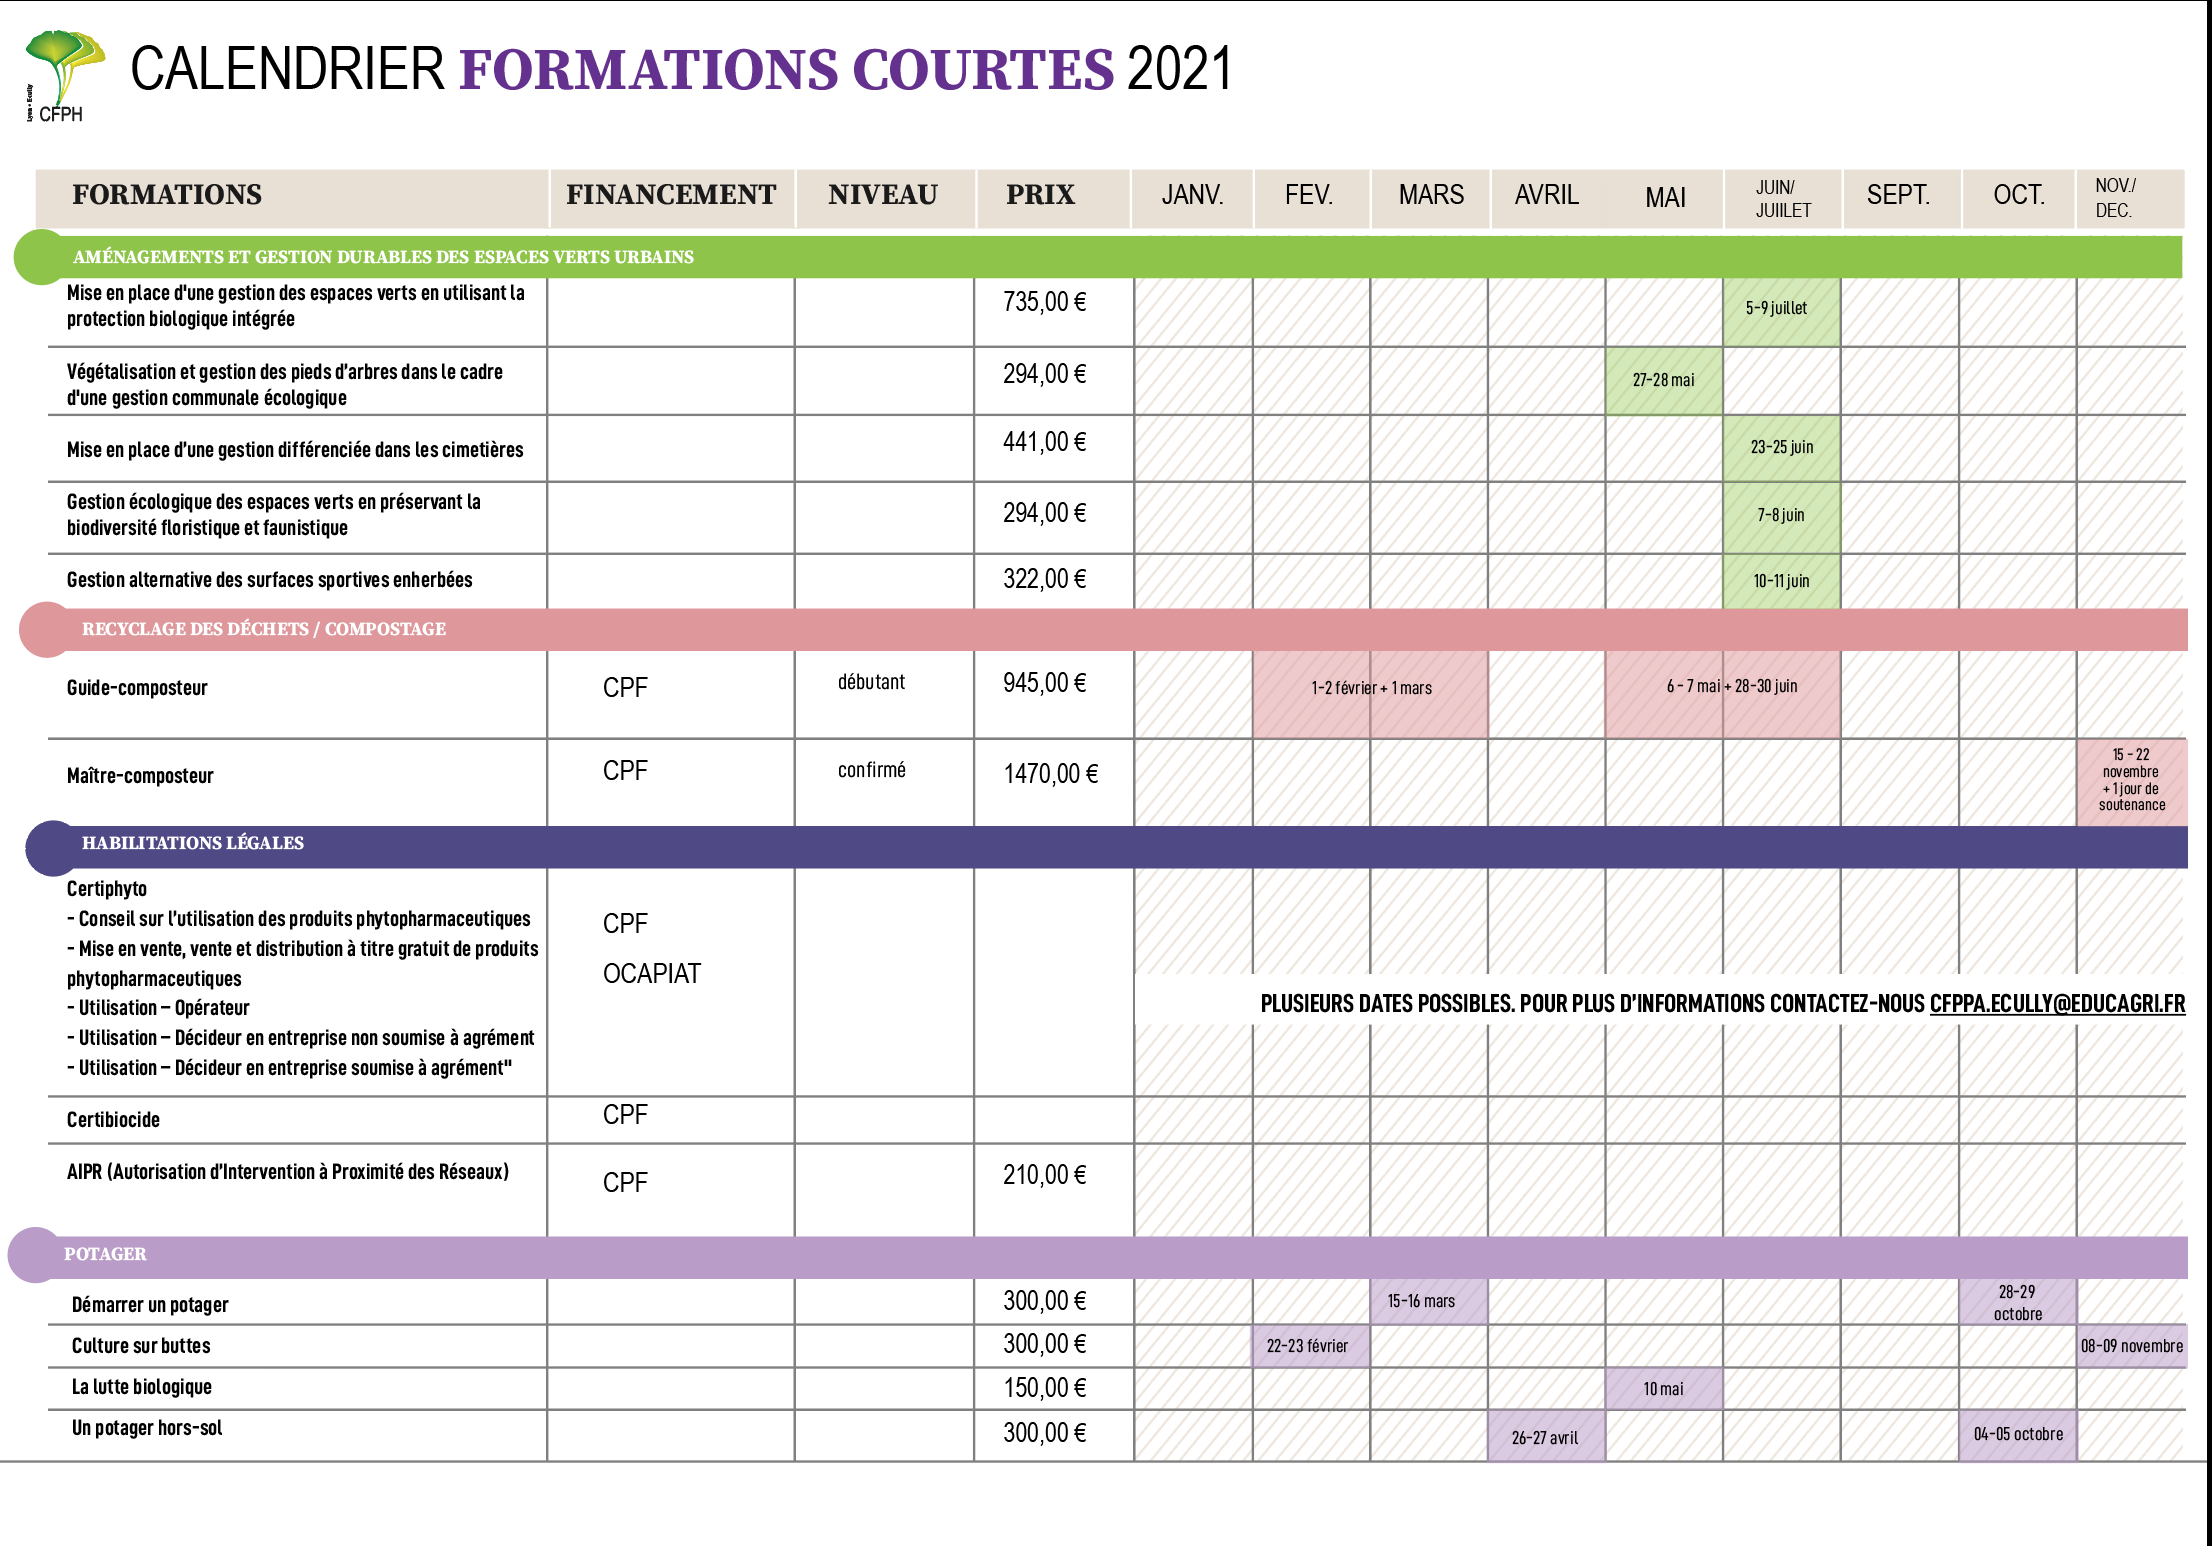 Calendrier FPC